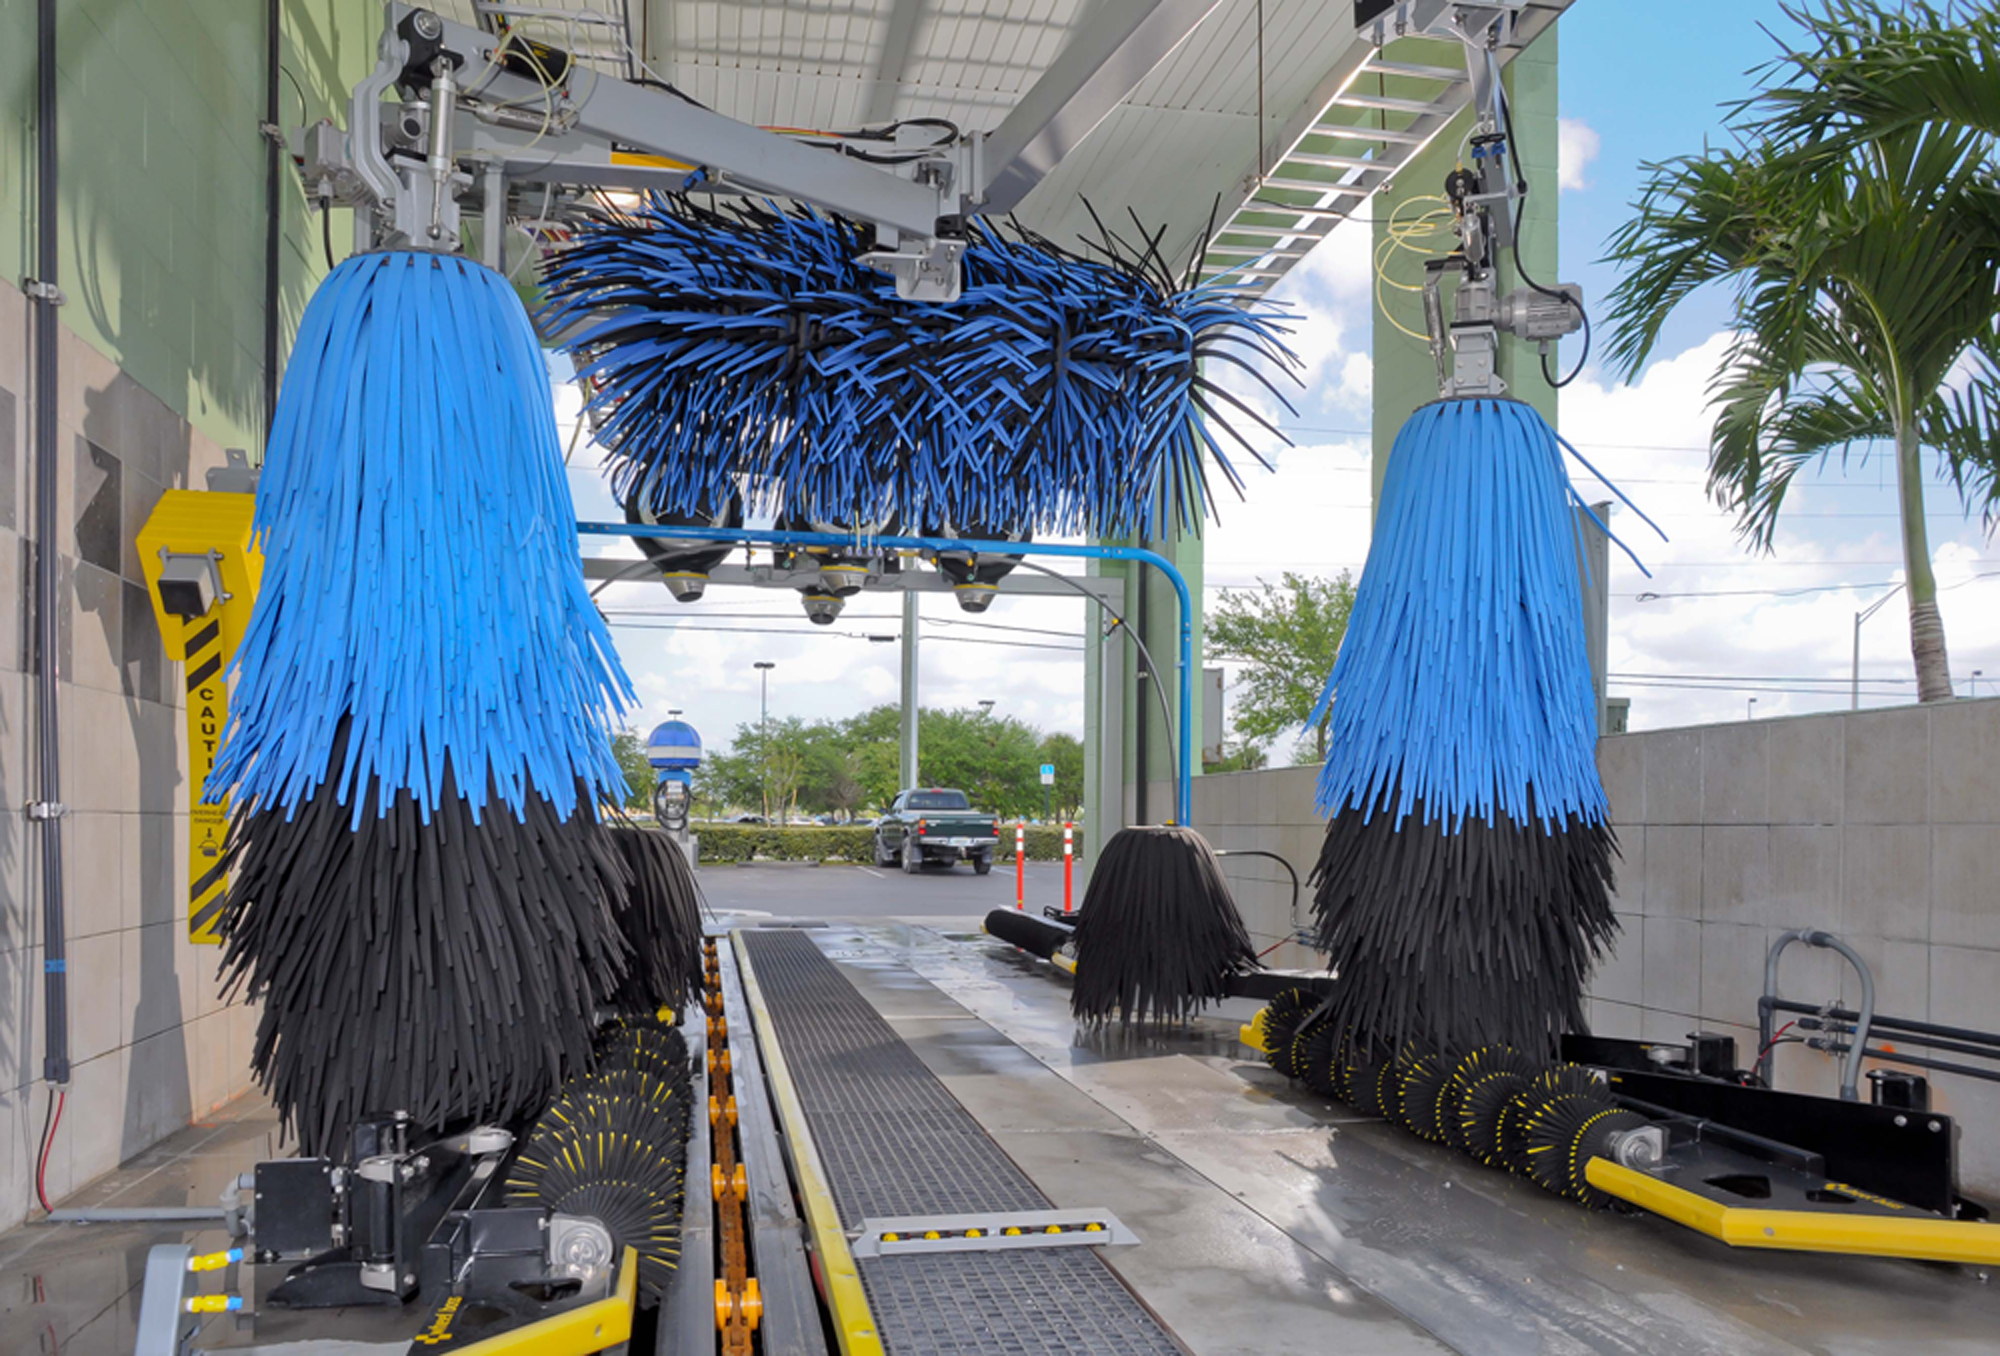 Macneil Car Wash Equipment >> Macneil In Bay Express Wash Conversion Harrell S Car Wash Systems